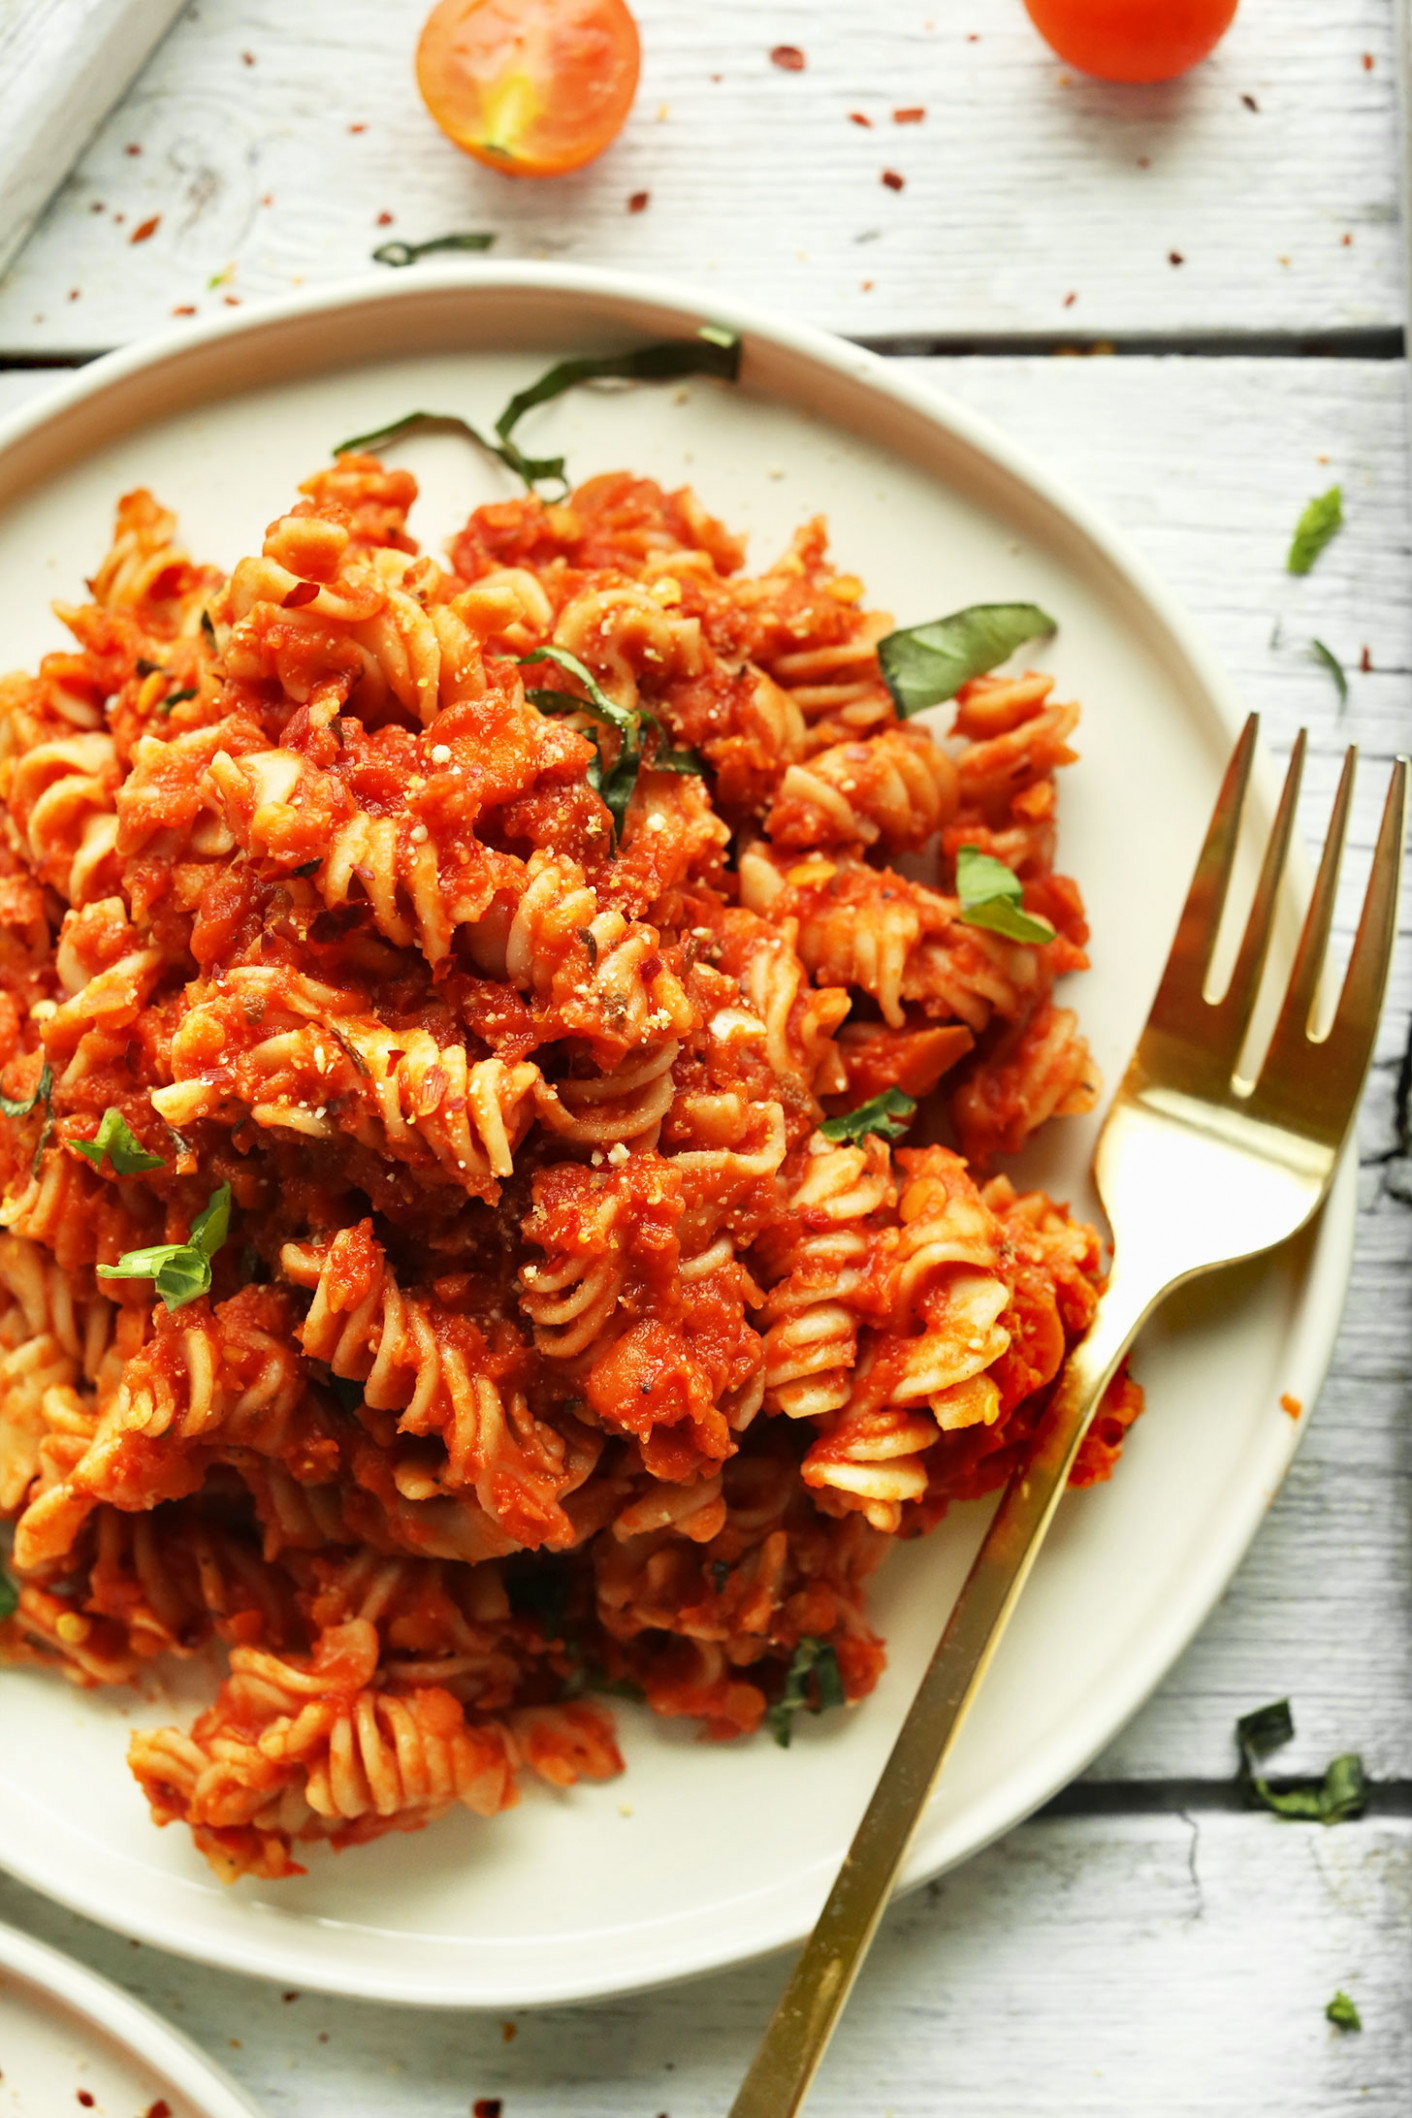 Spicy Red Pasta with Lentils - recipes pasta sauce healthy